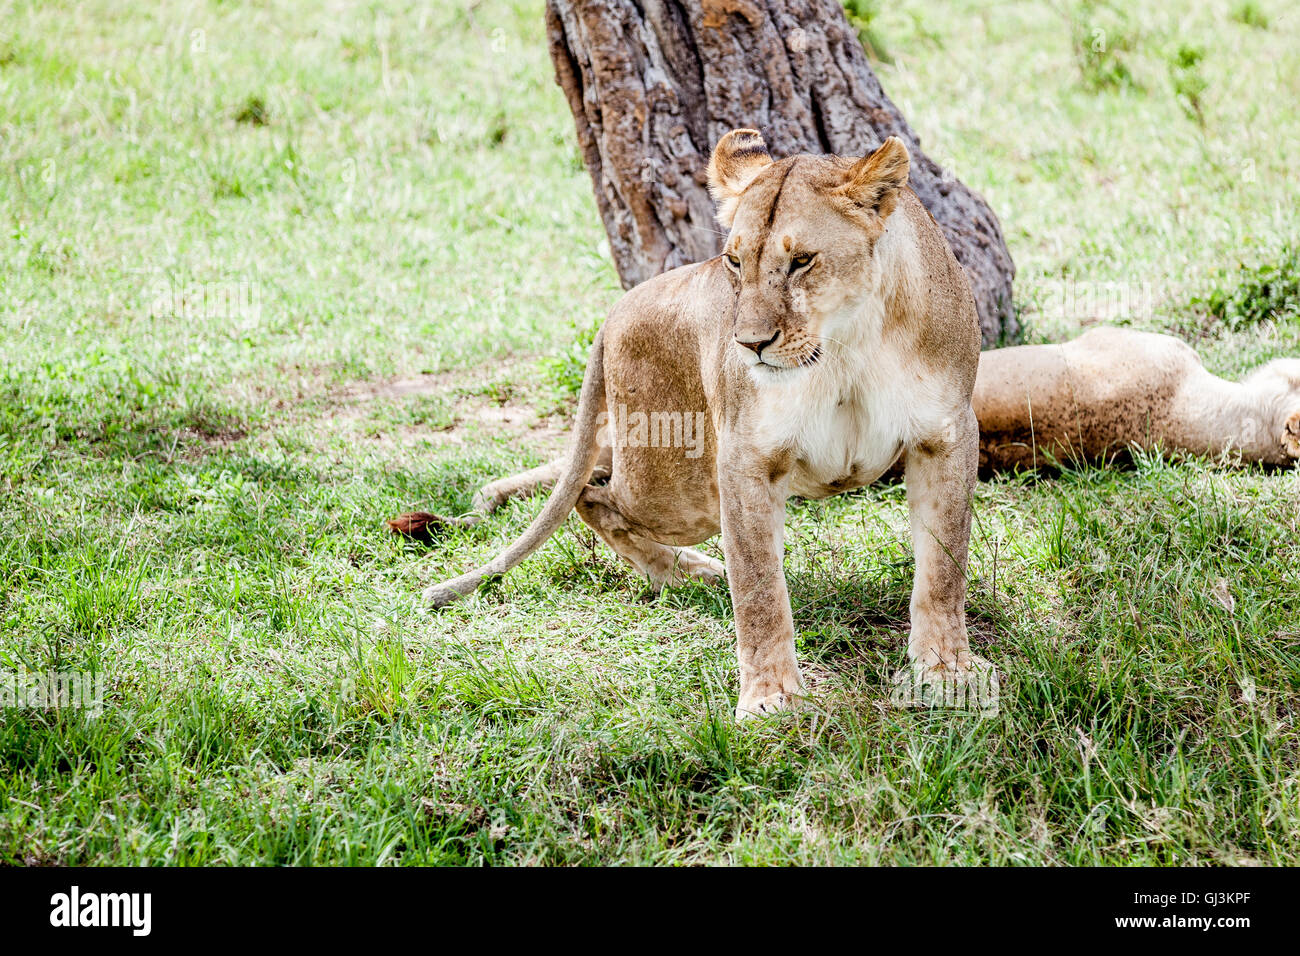 lion and tree - Stock Image